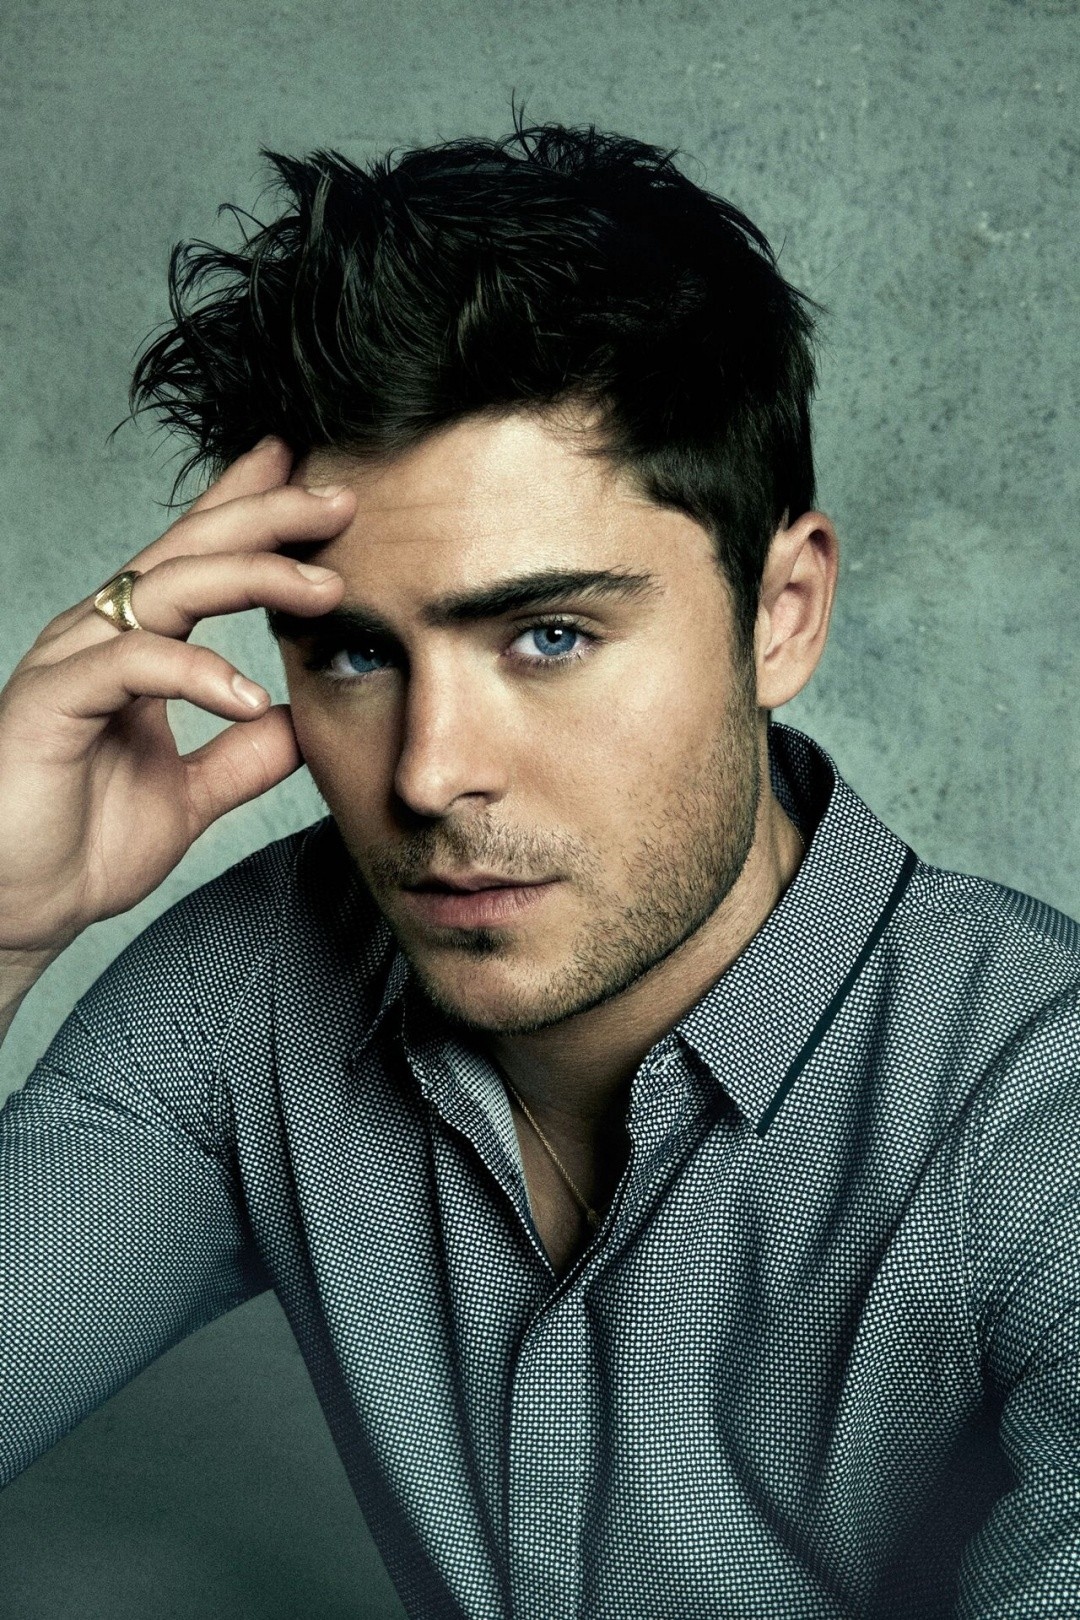 Zac Effron 10 Celebrities with the Extremely Gross Hygiene Practices